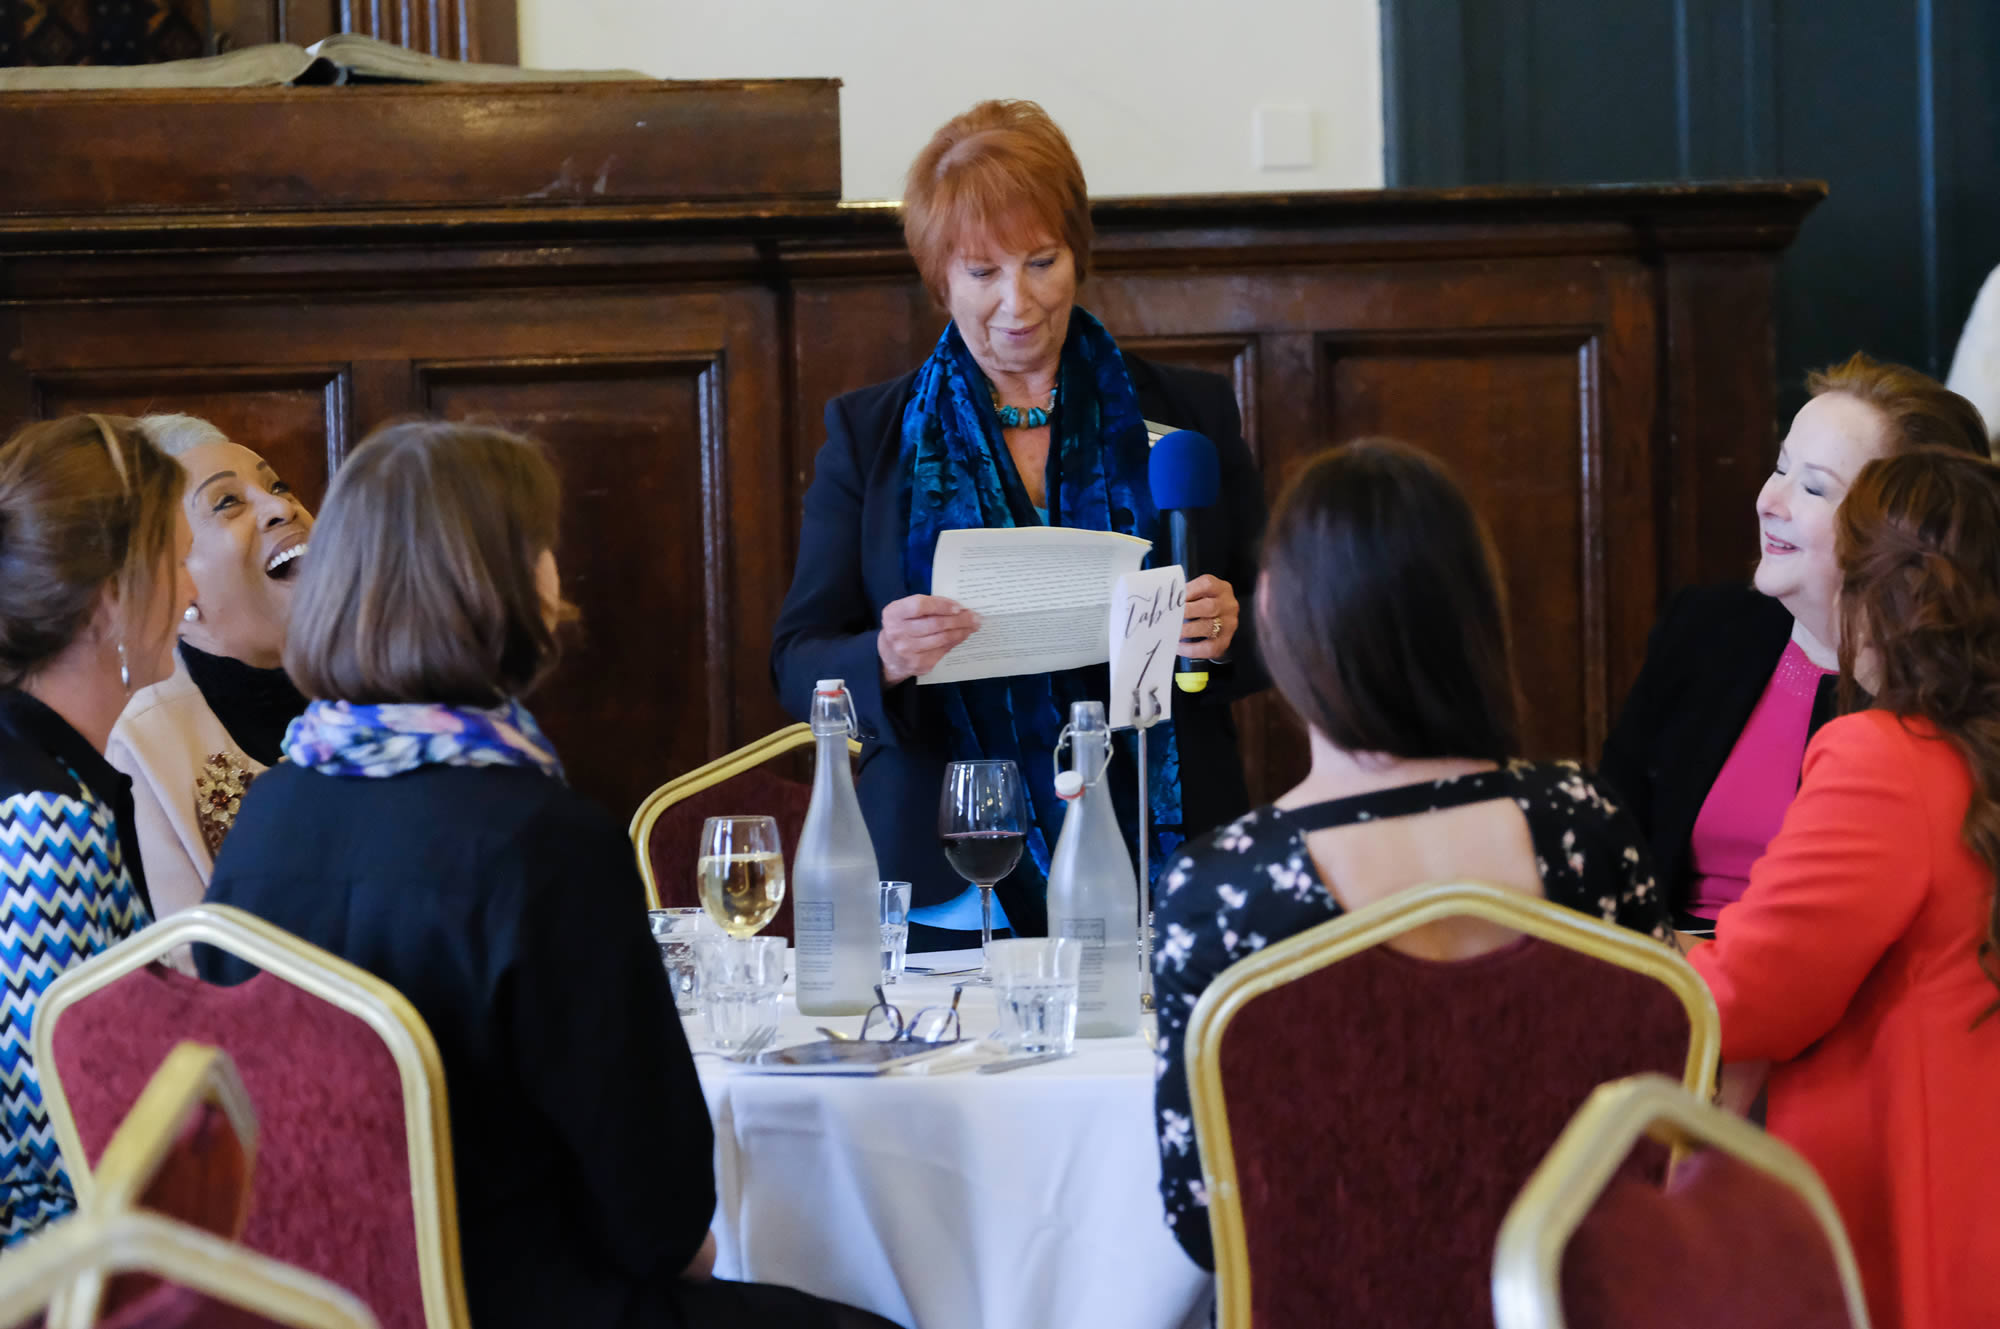 lady_vals_networking_lunch_april_2018_18085_230